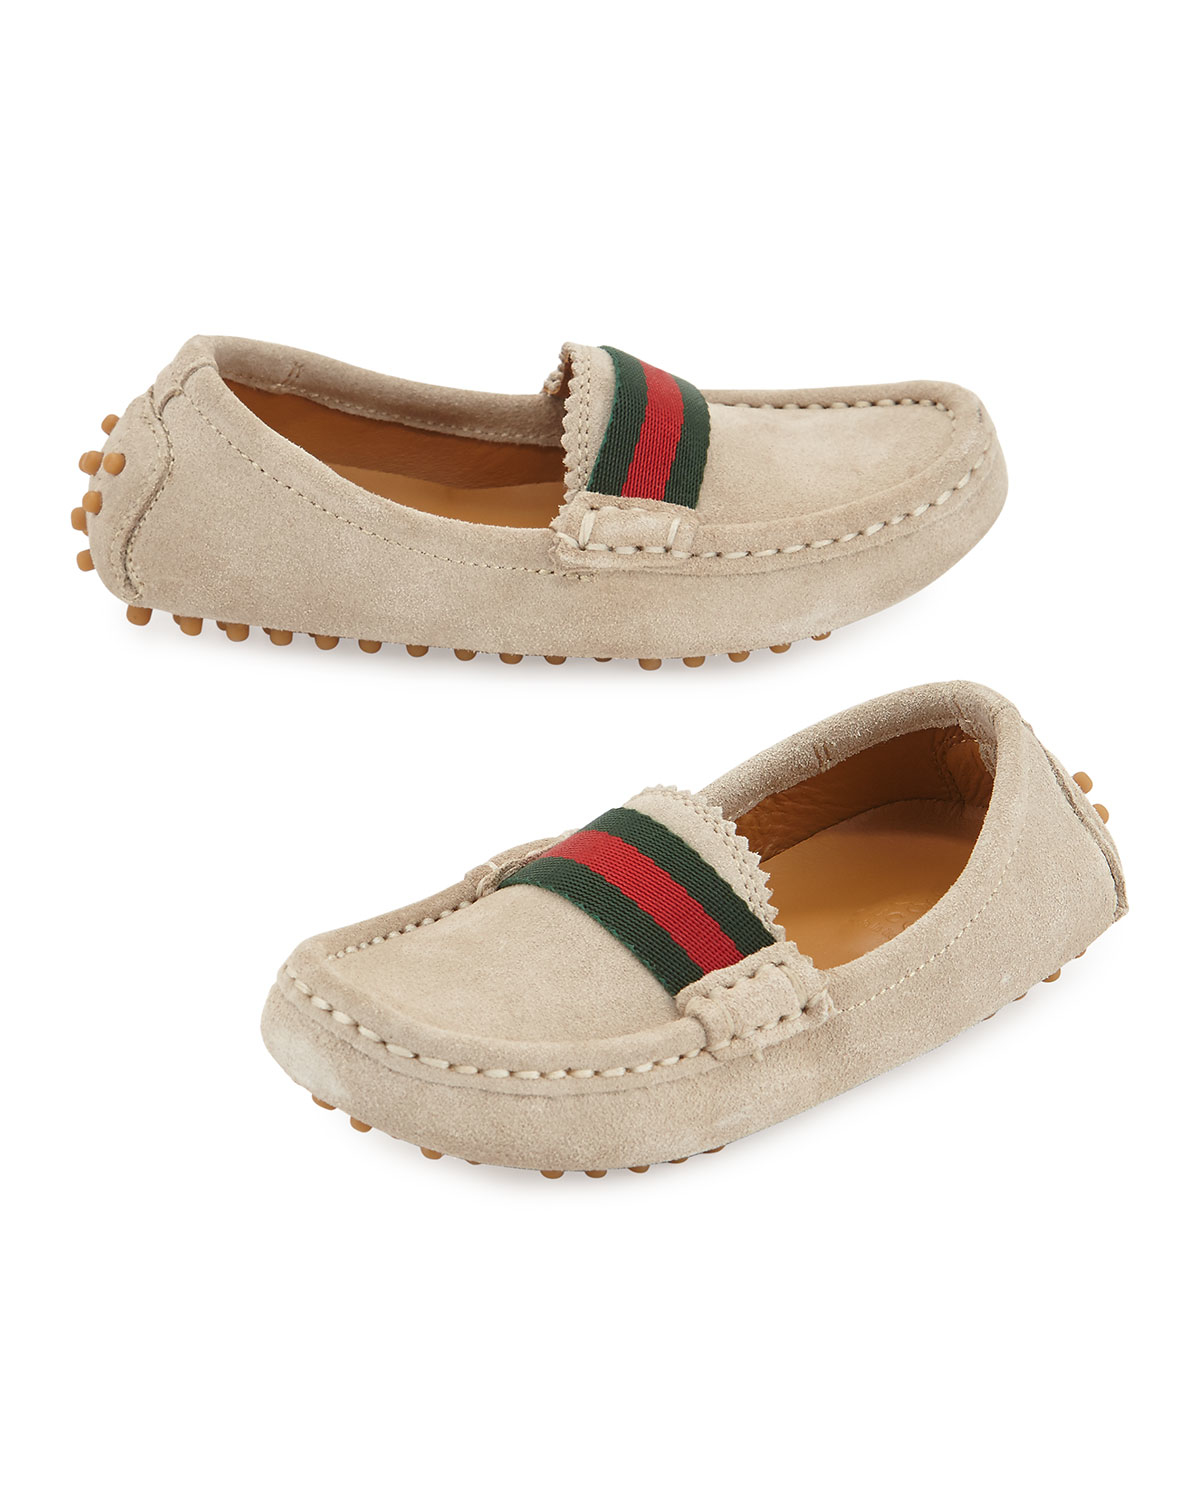 7adcddc7664 Lyst - Gucci Driving Dandy Suede Moccasin Driver in Natural